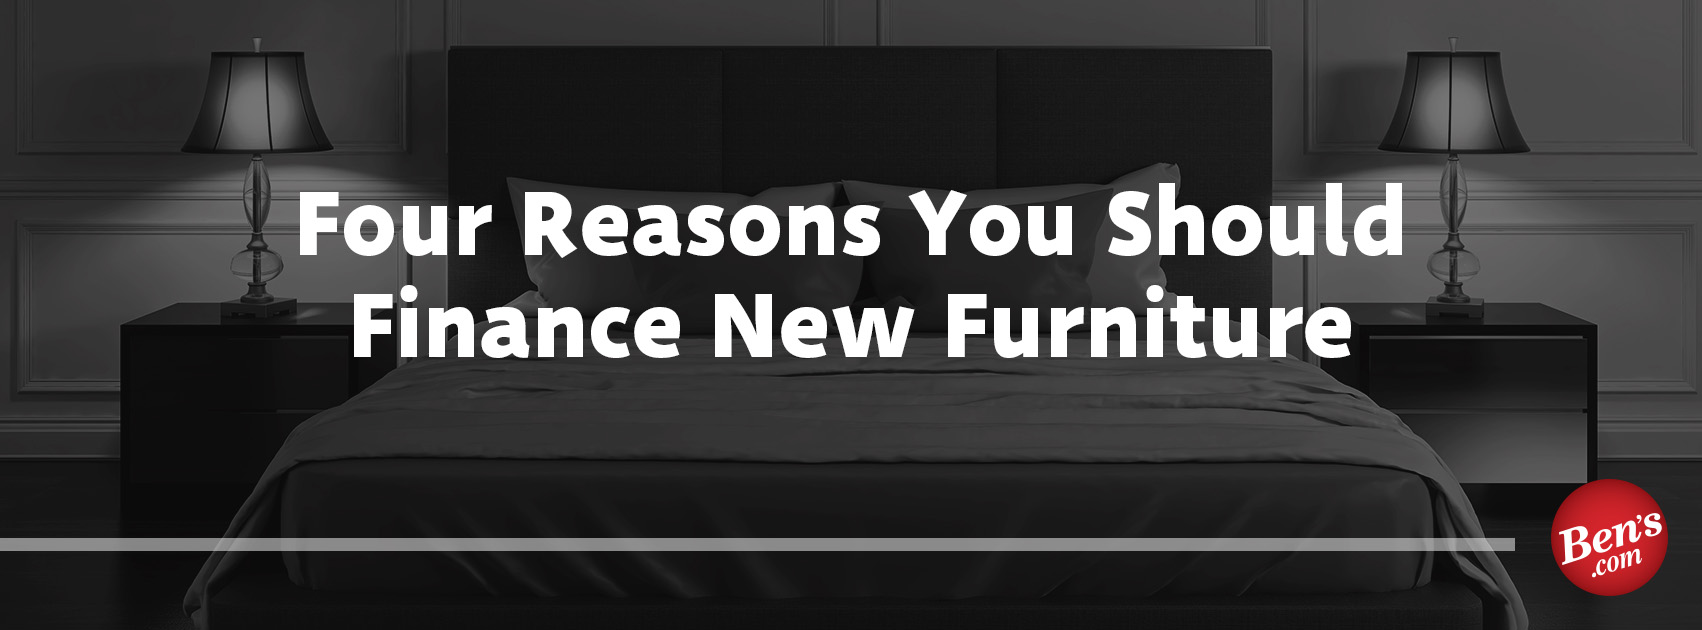 January (2) _ Four Reasons You Should Finance New Furniture